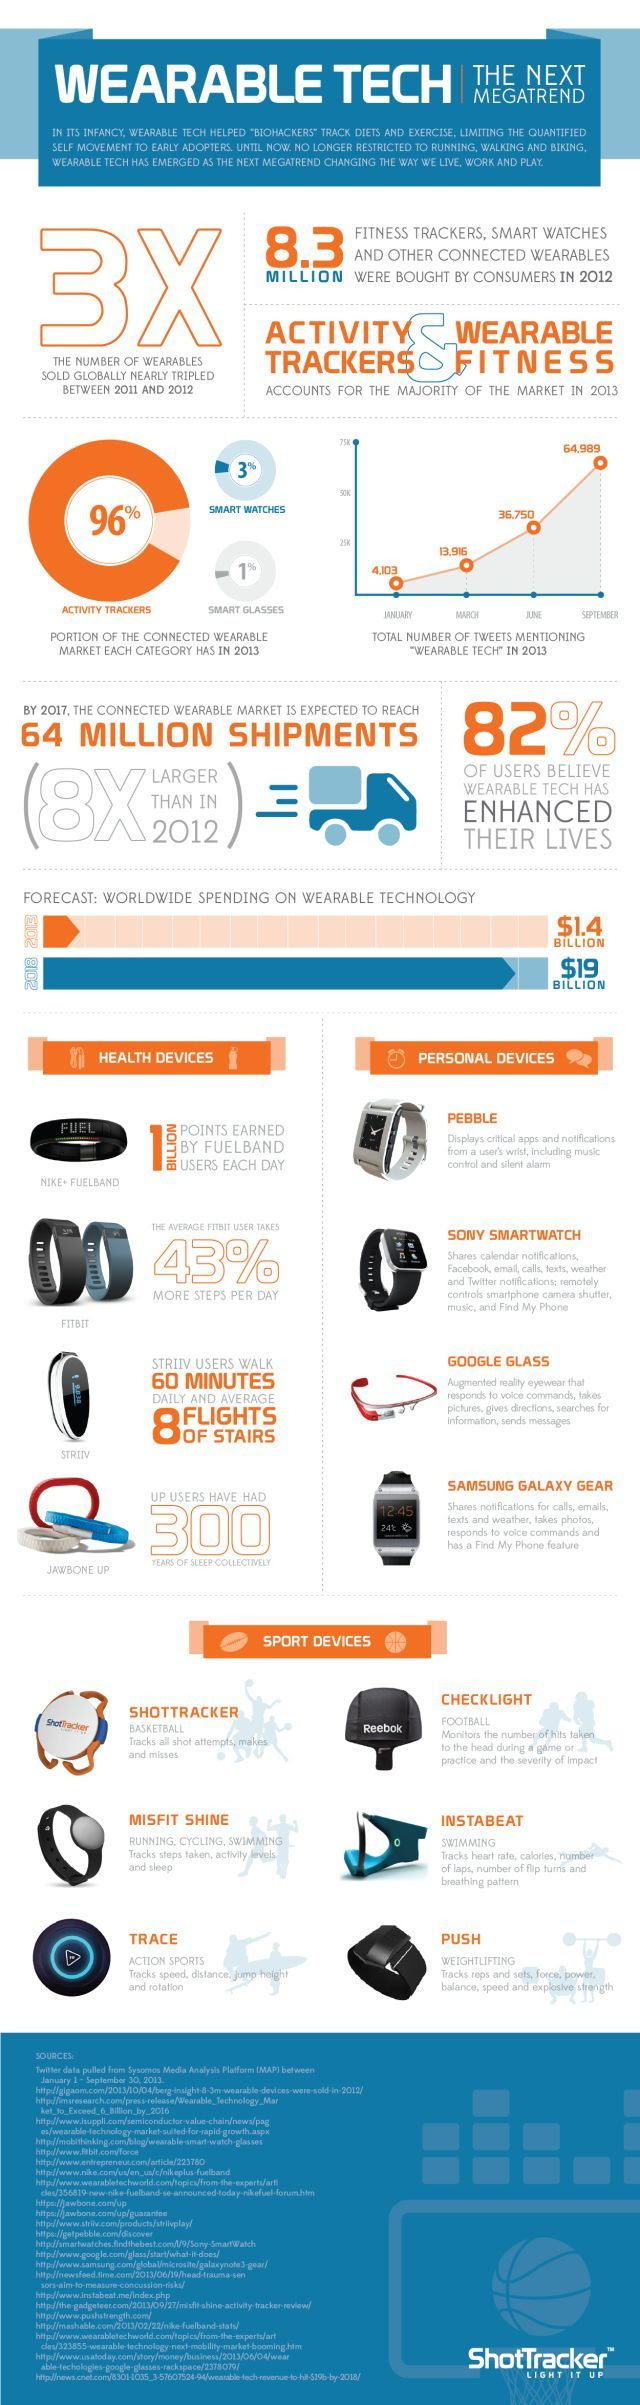 Wearable Tech the Next Megatrend